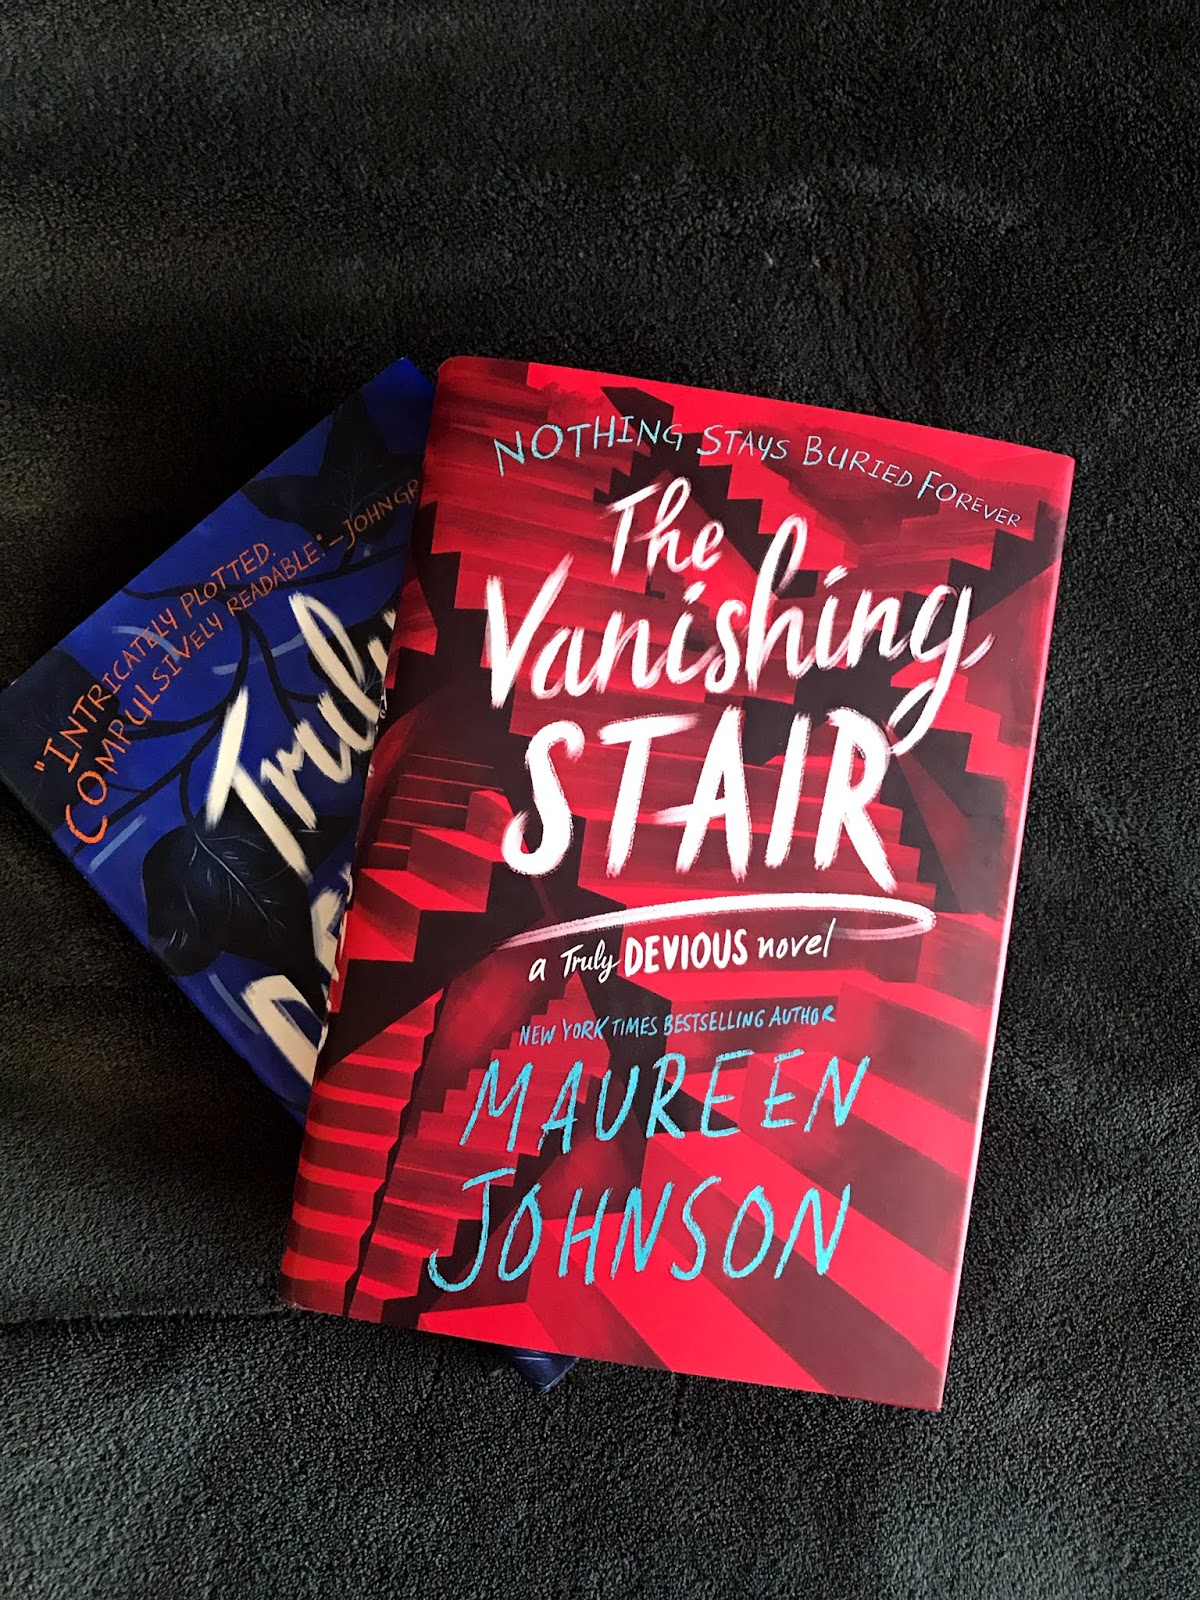 Nerdy By Nature: The Vanishing Stair (Truly Devious #2) Review